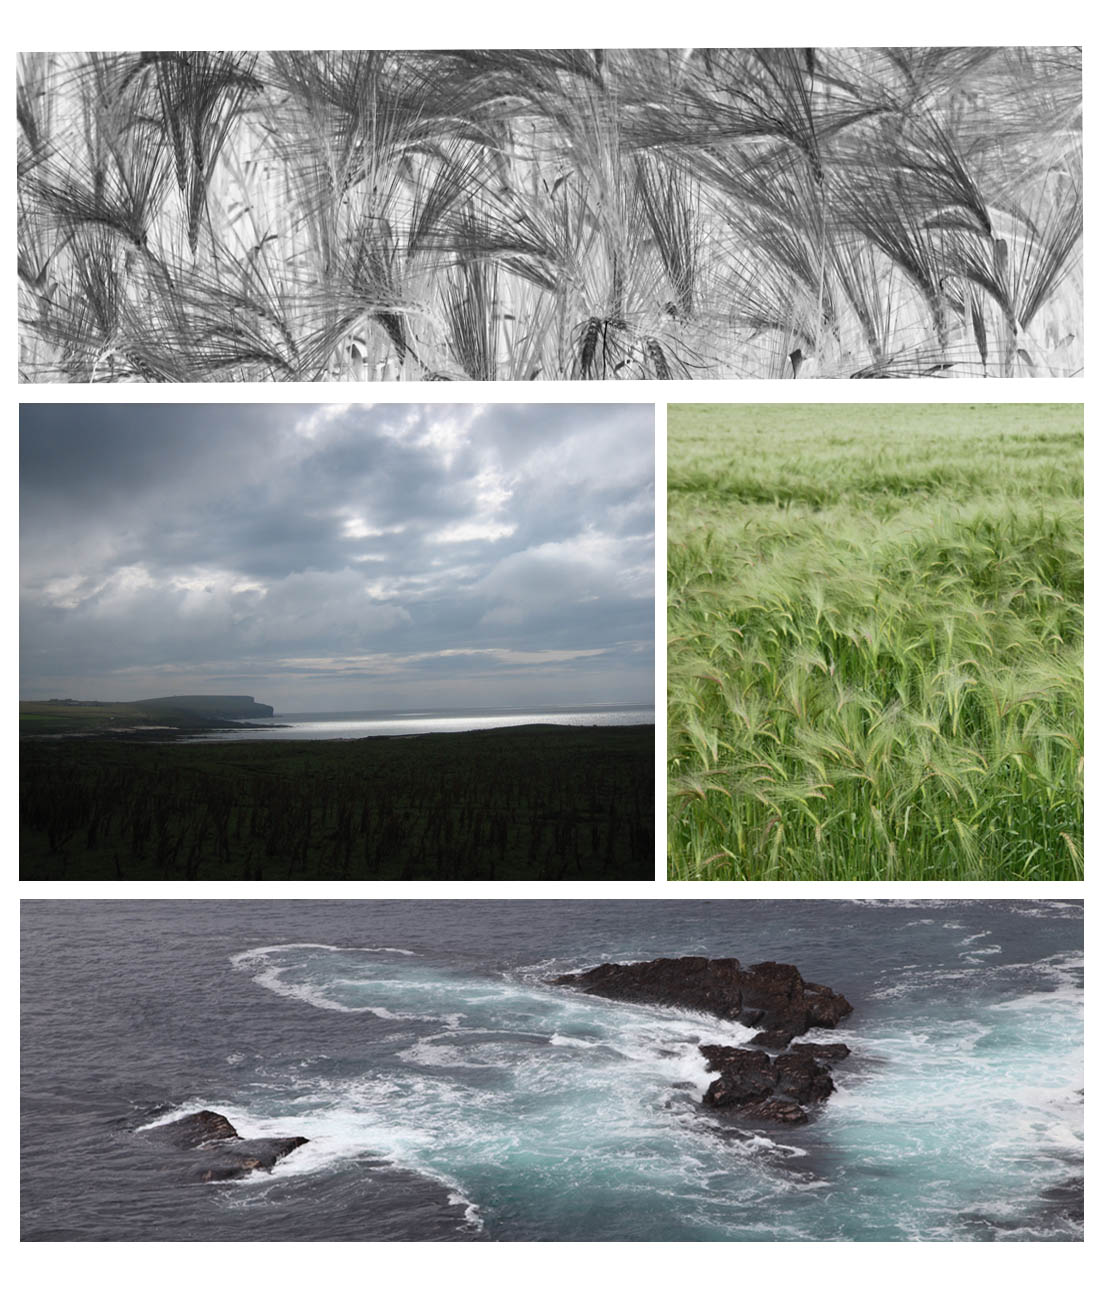 Bere canopy, image modified to show structure, green bere crop in Orkney and seascapes (KM and GR Squire)